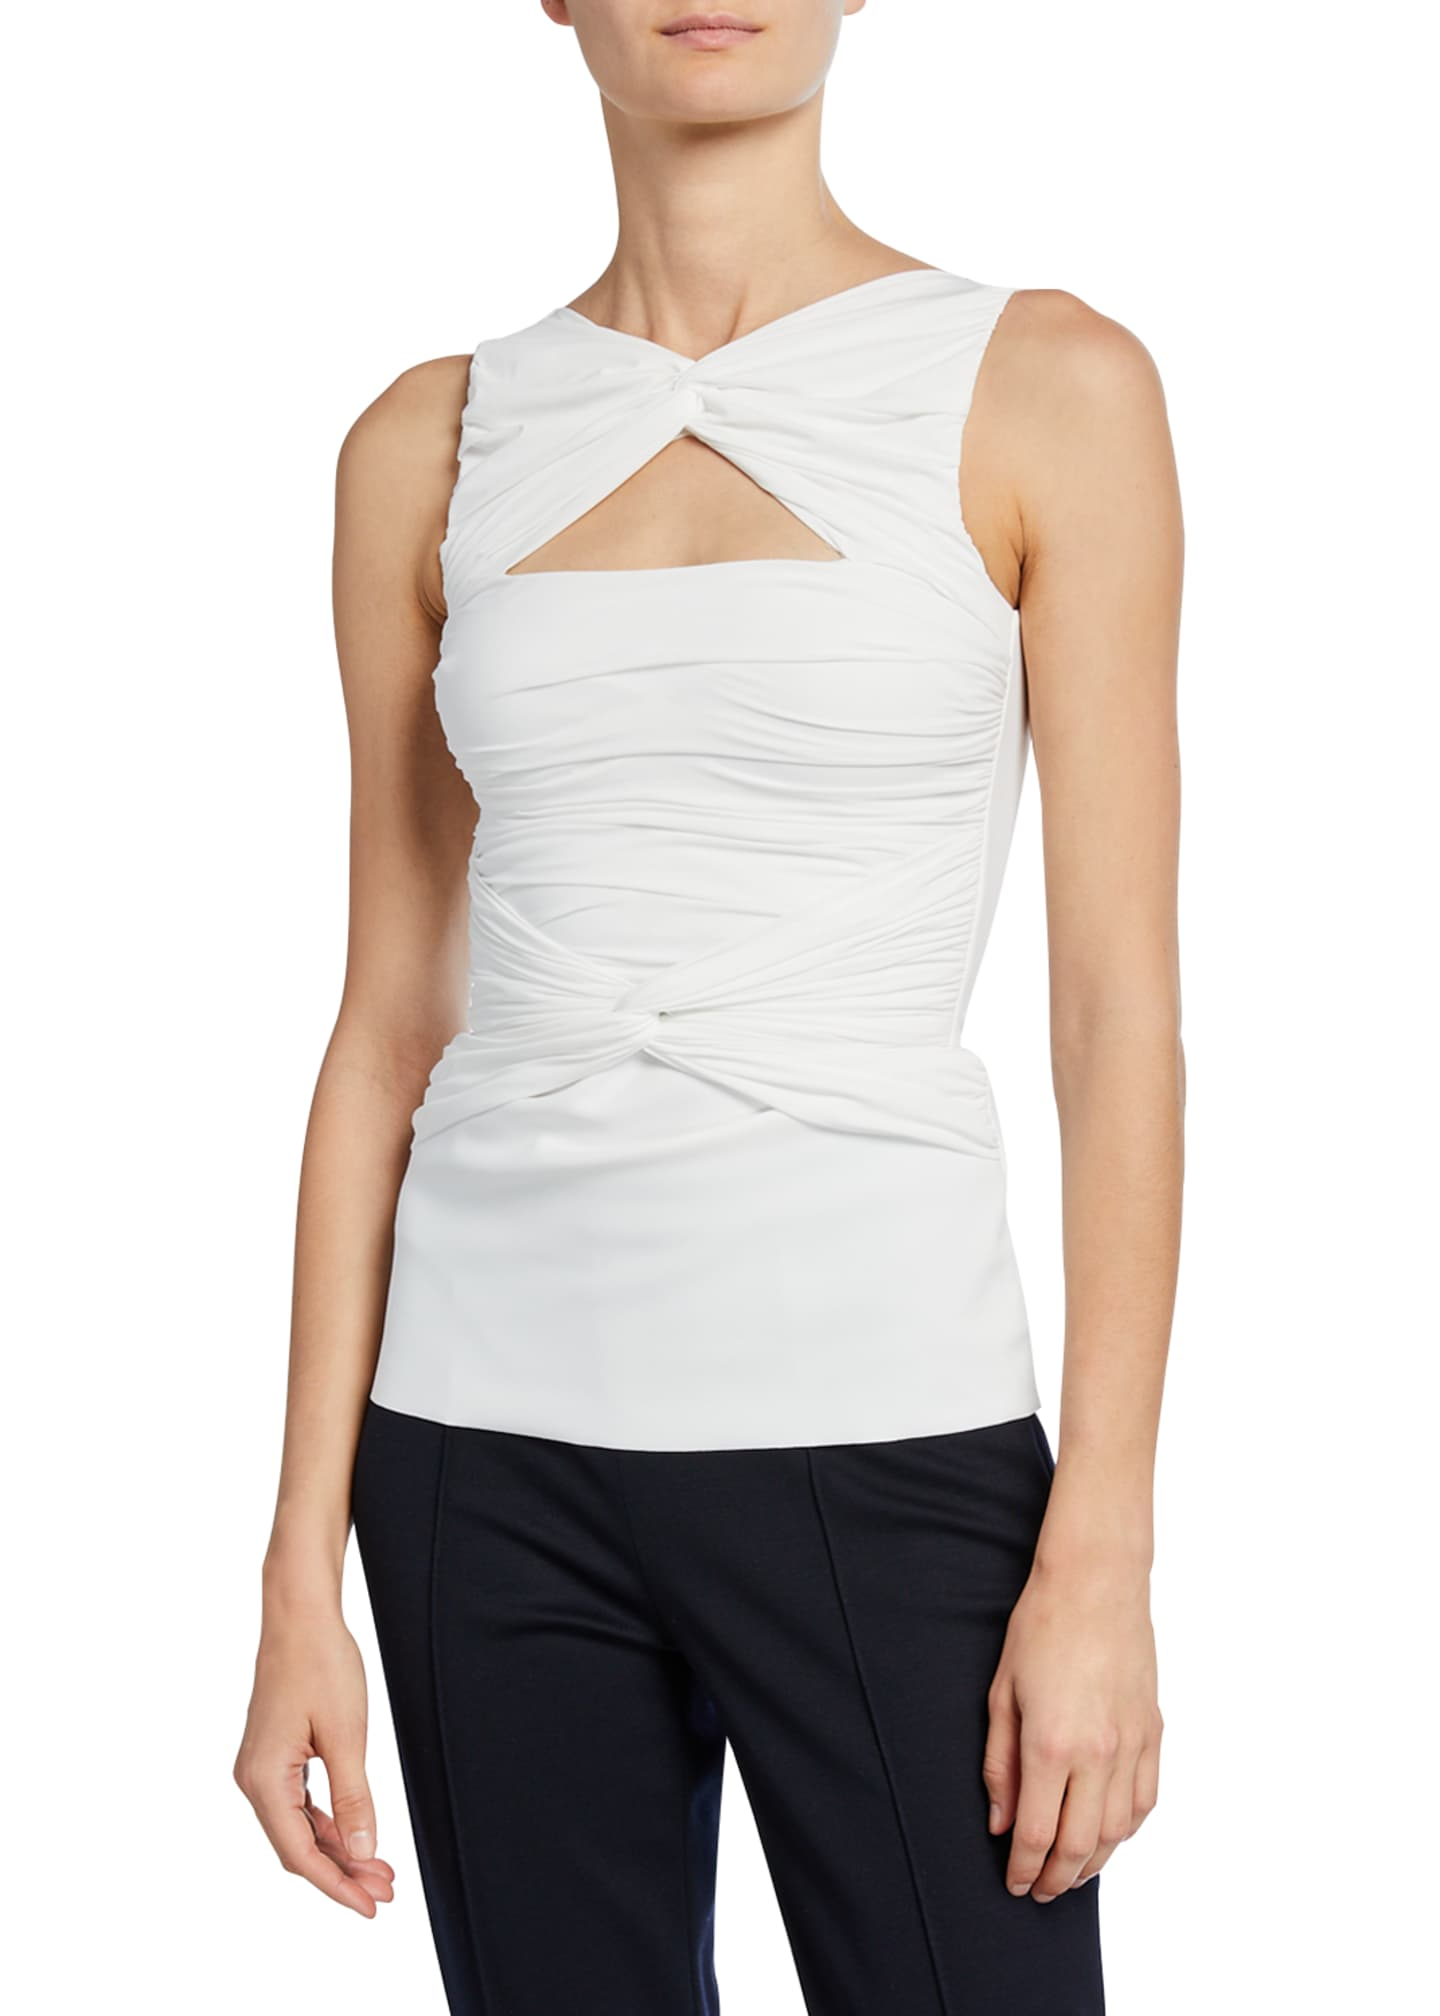 Chiara Boni La Petite Robe Puk Sleeveless Shirred